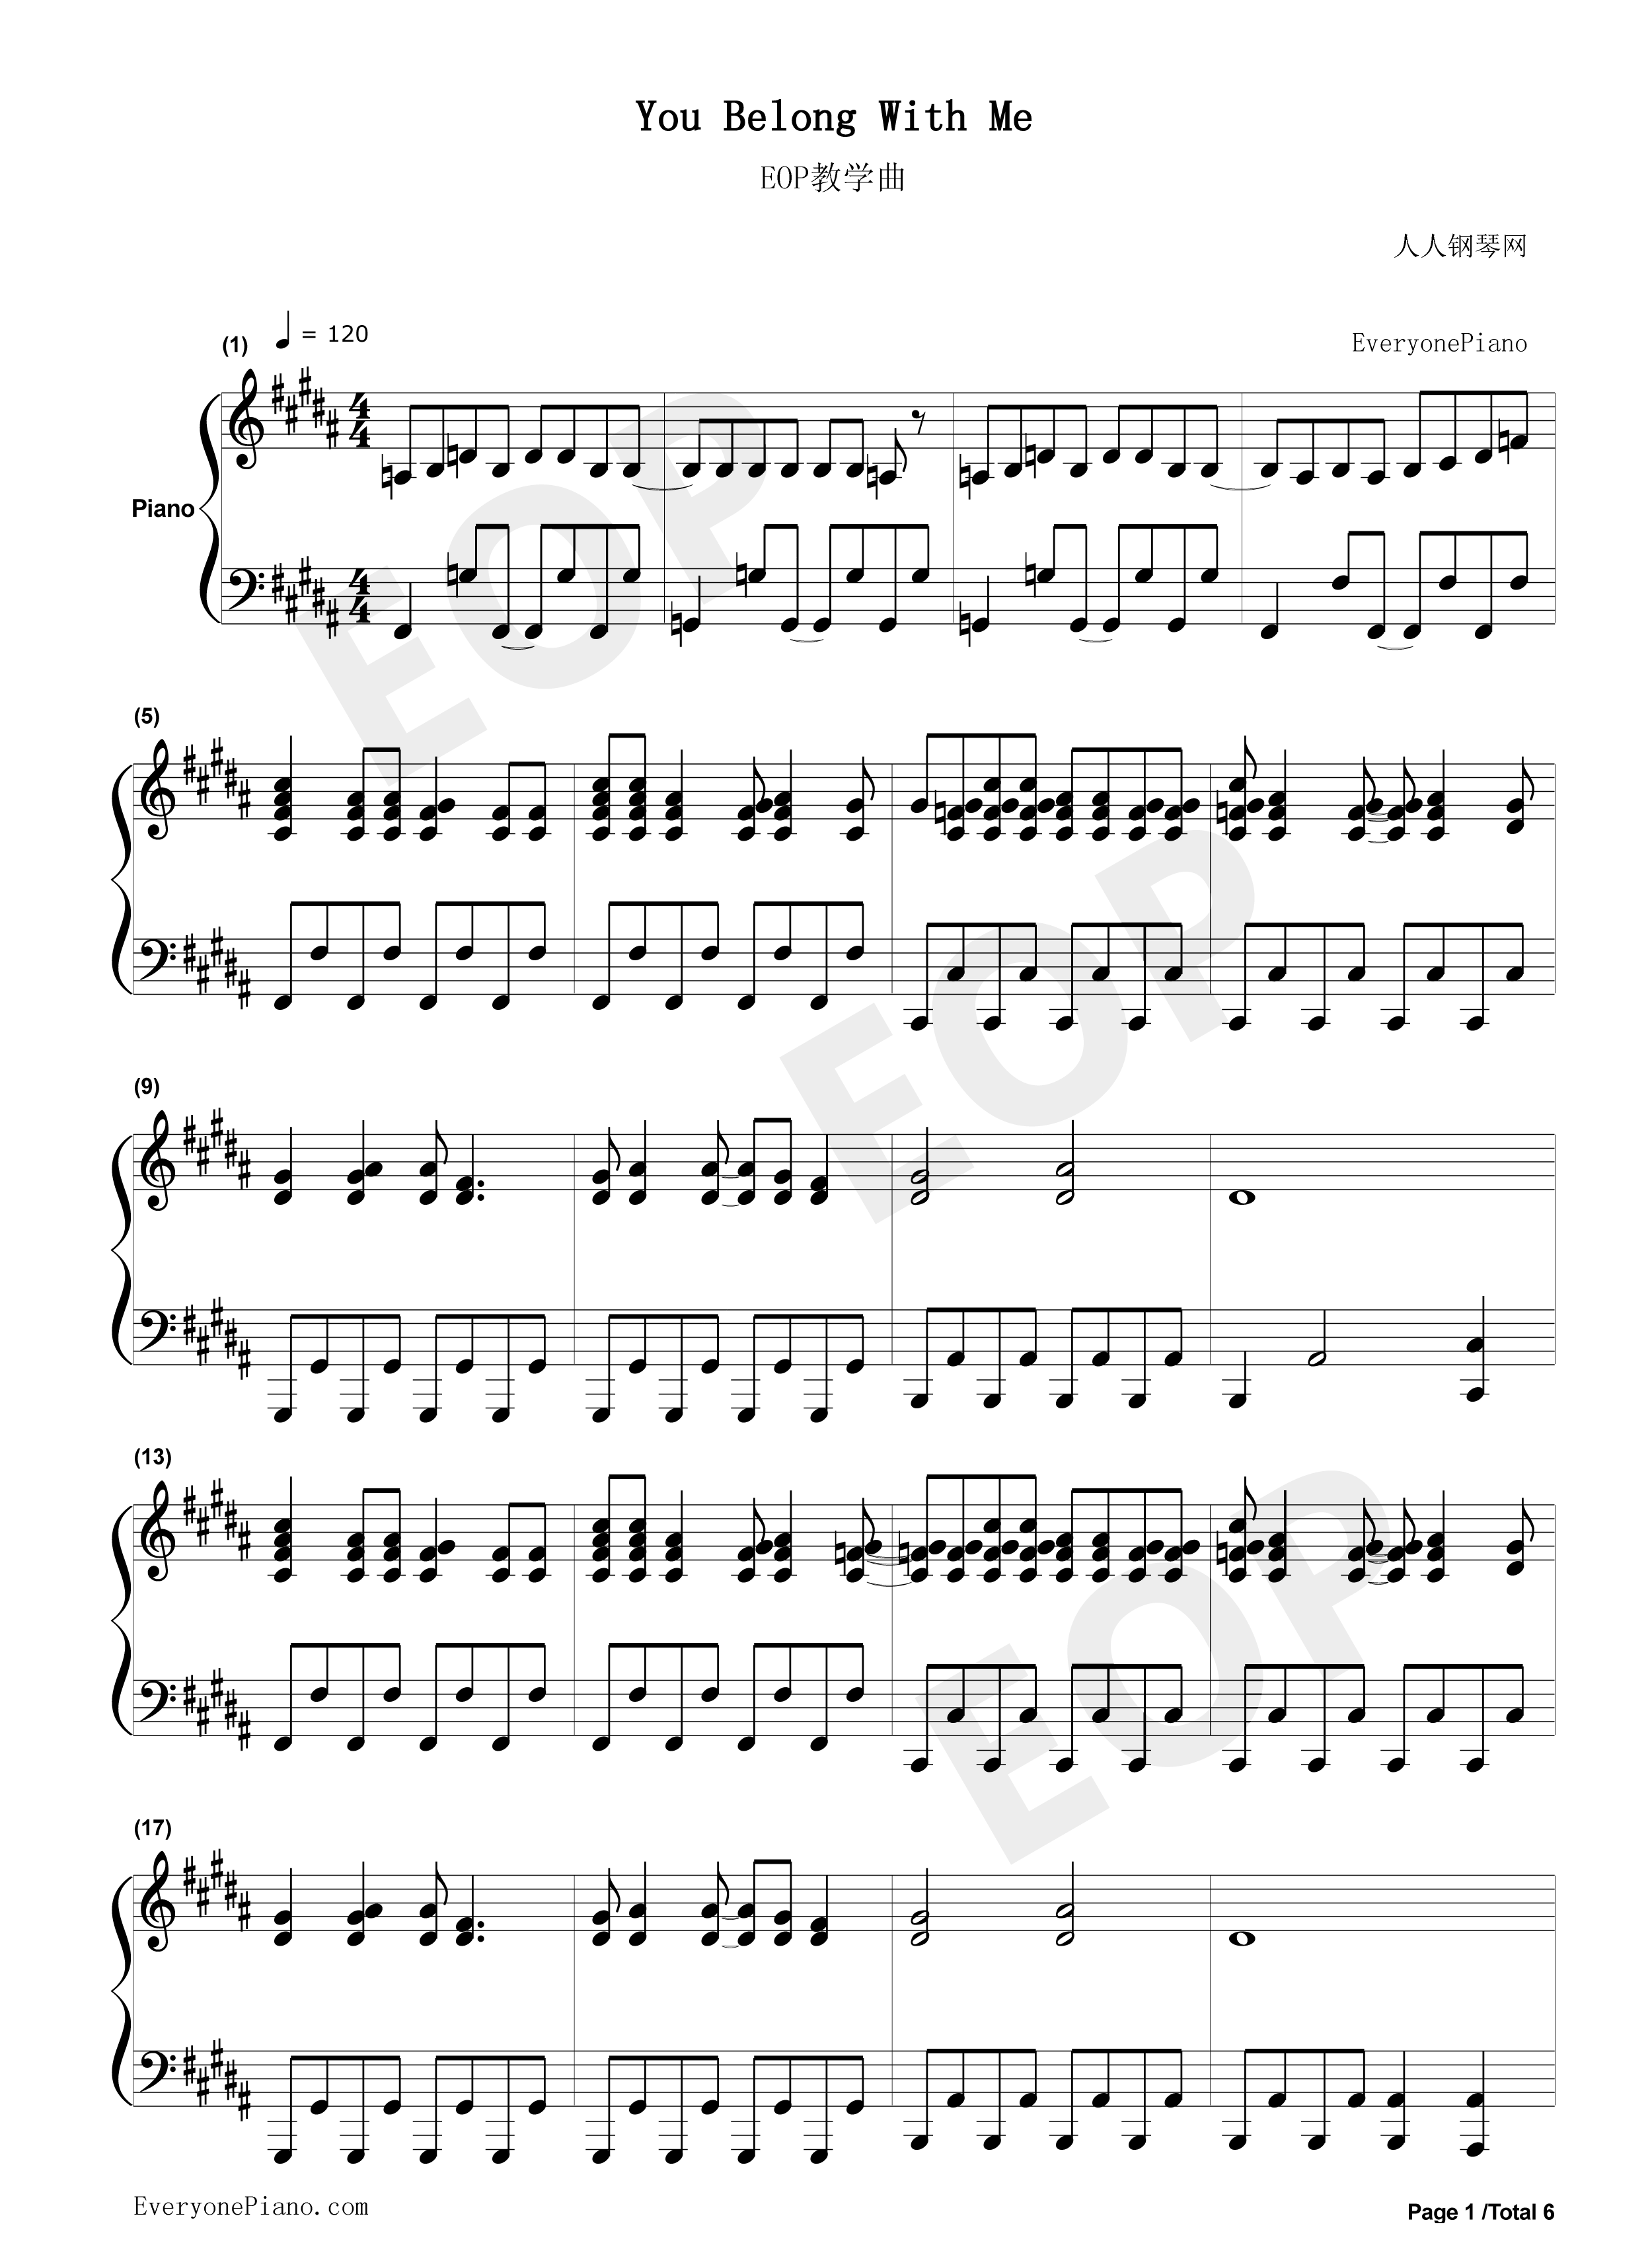 You belong with me taylor swift stave preview 1 free piano sheet listen now print sheet you belong with me taylor swift stave preview 1 hexwebz Image collections